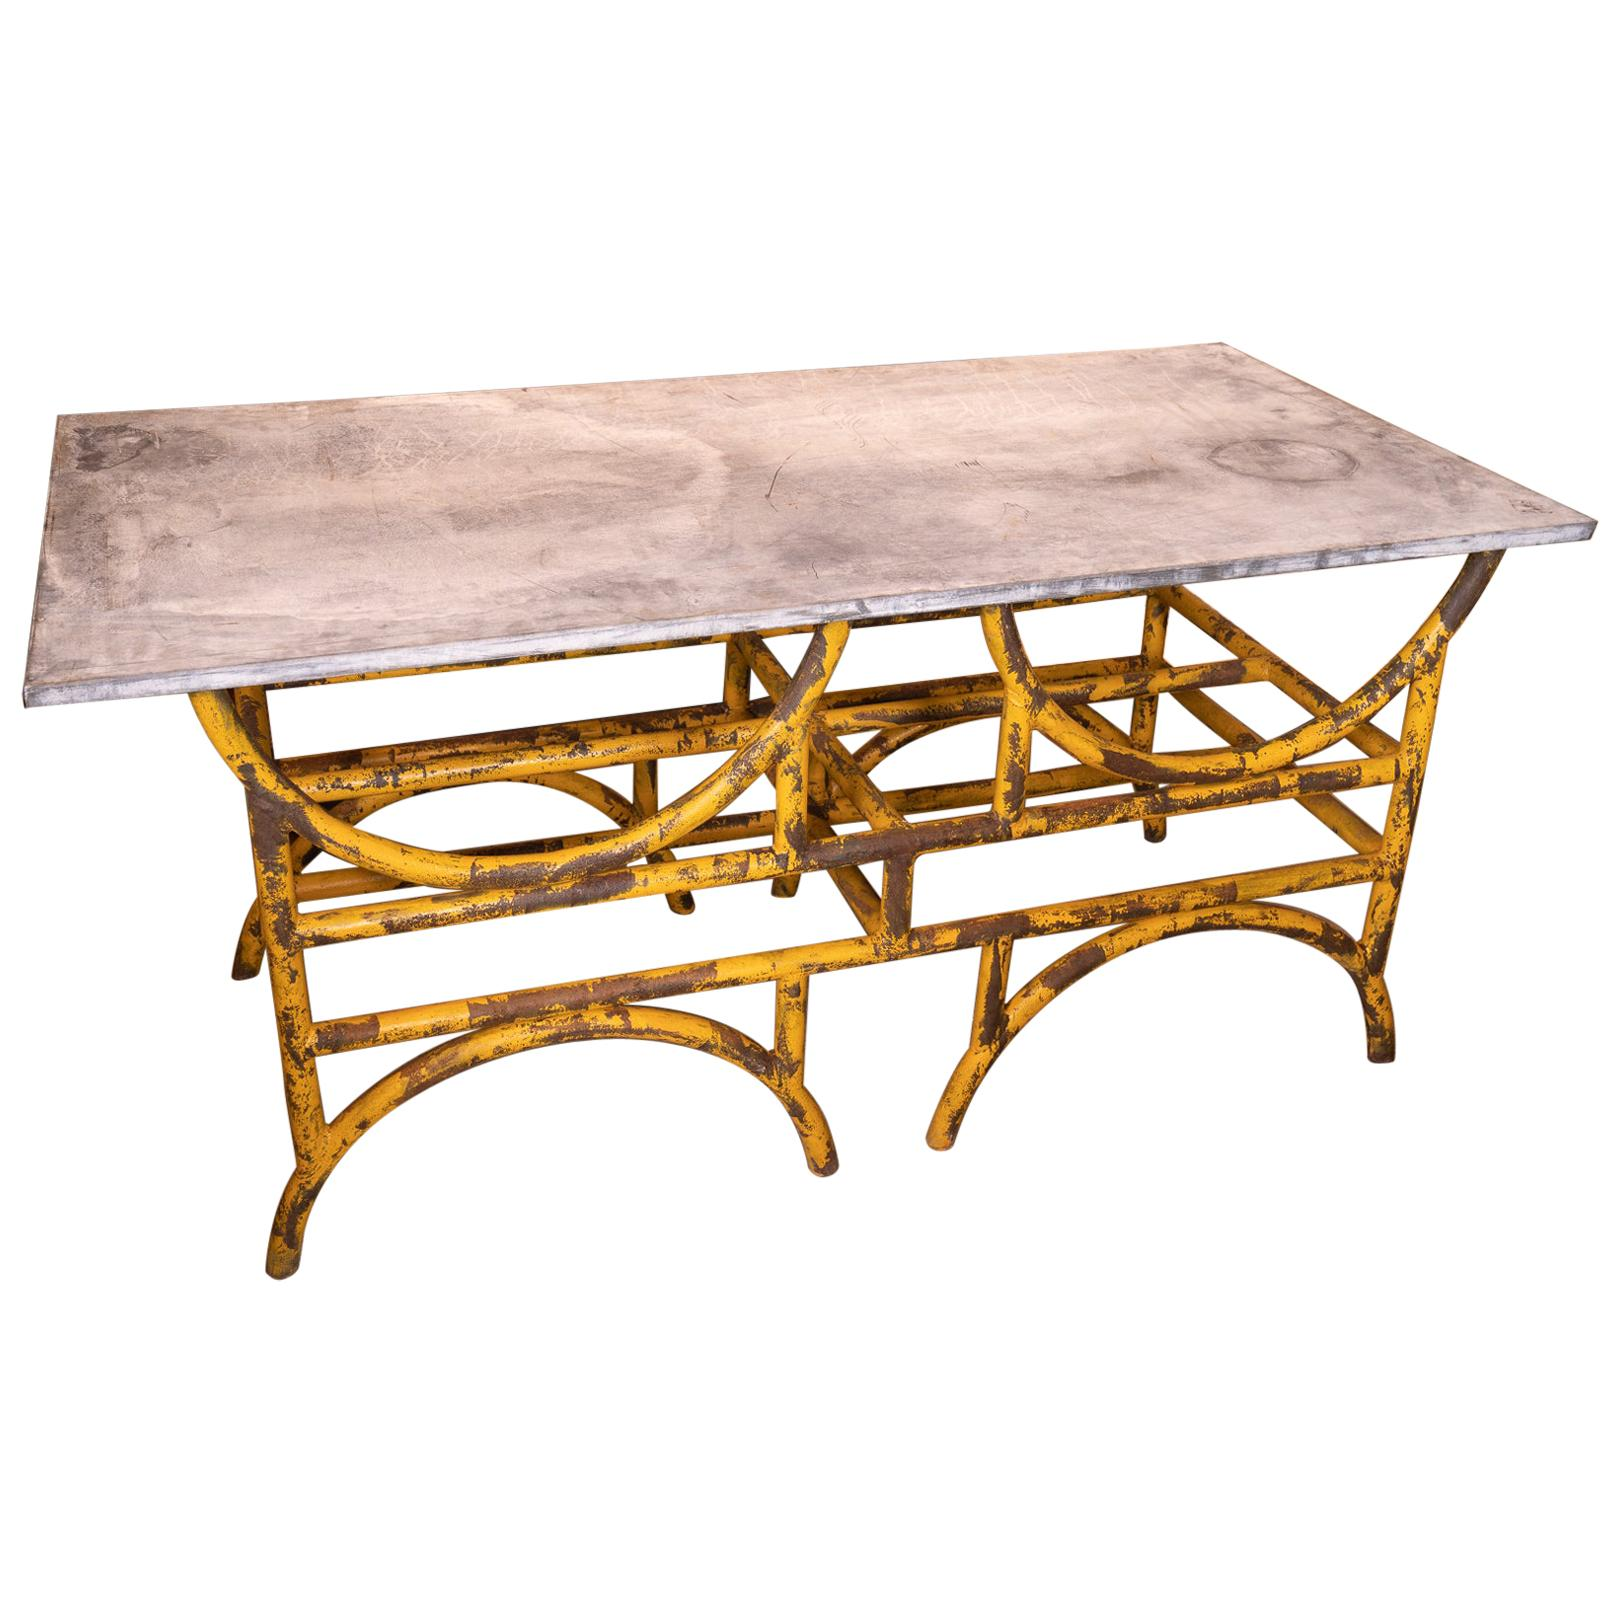 19th Century French Iron and Stone Table De Boucher